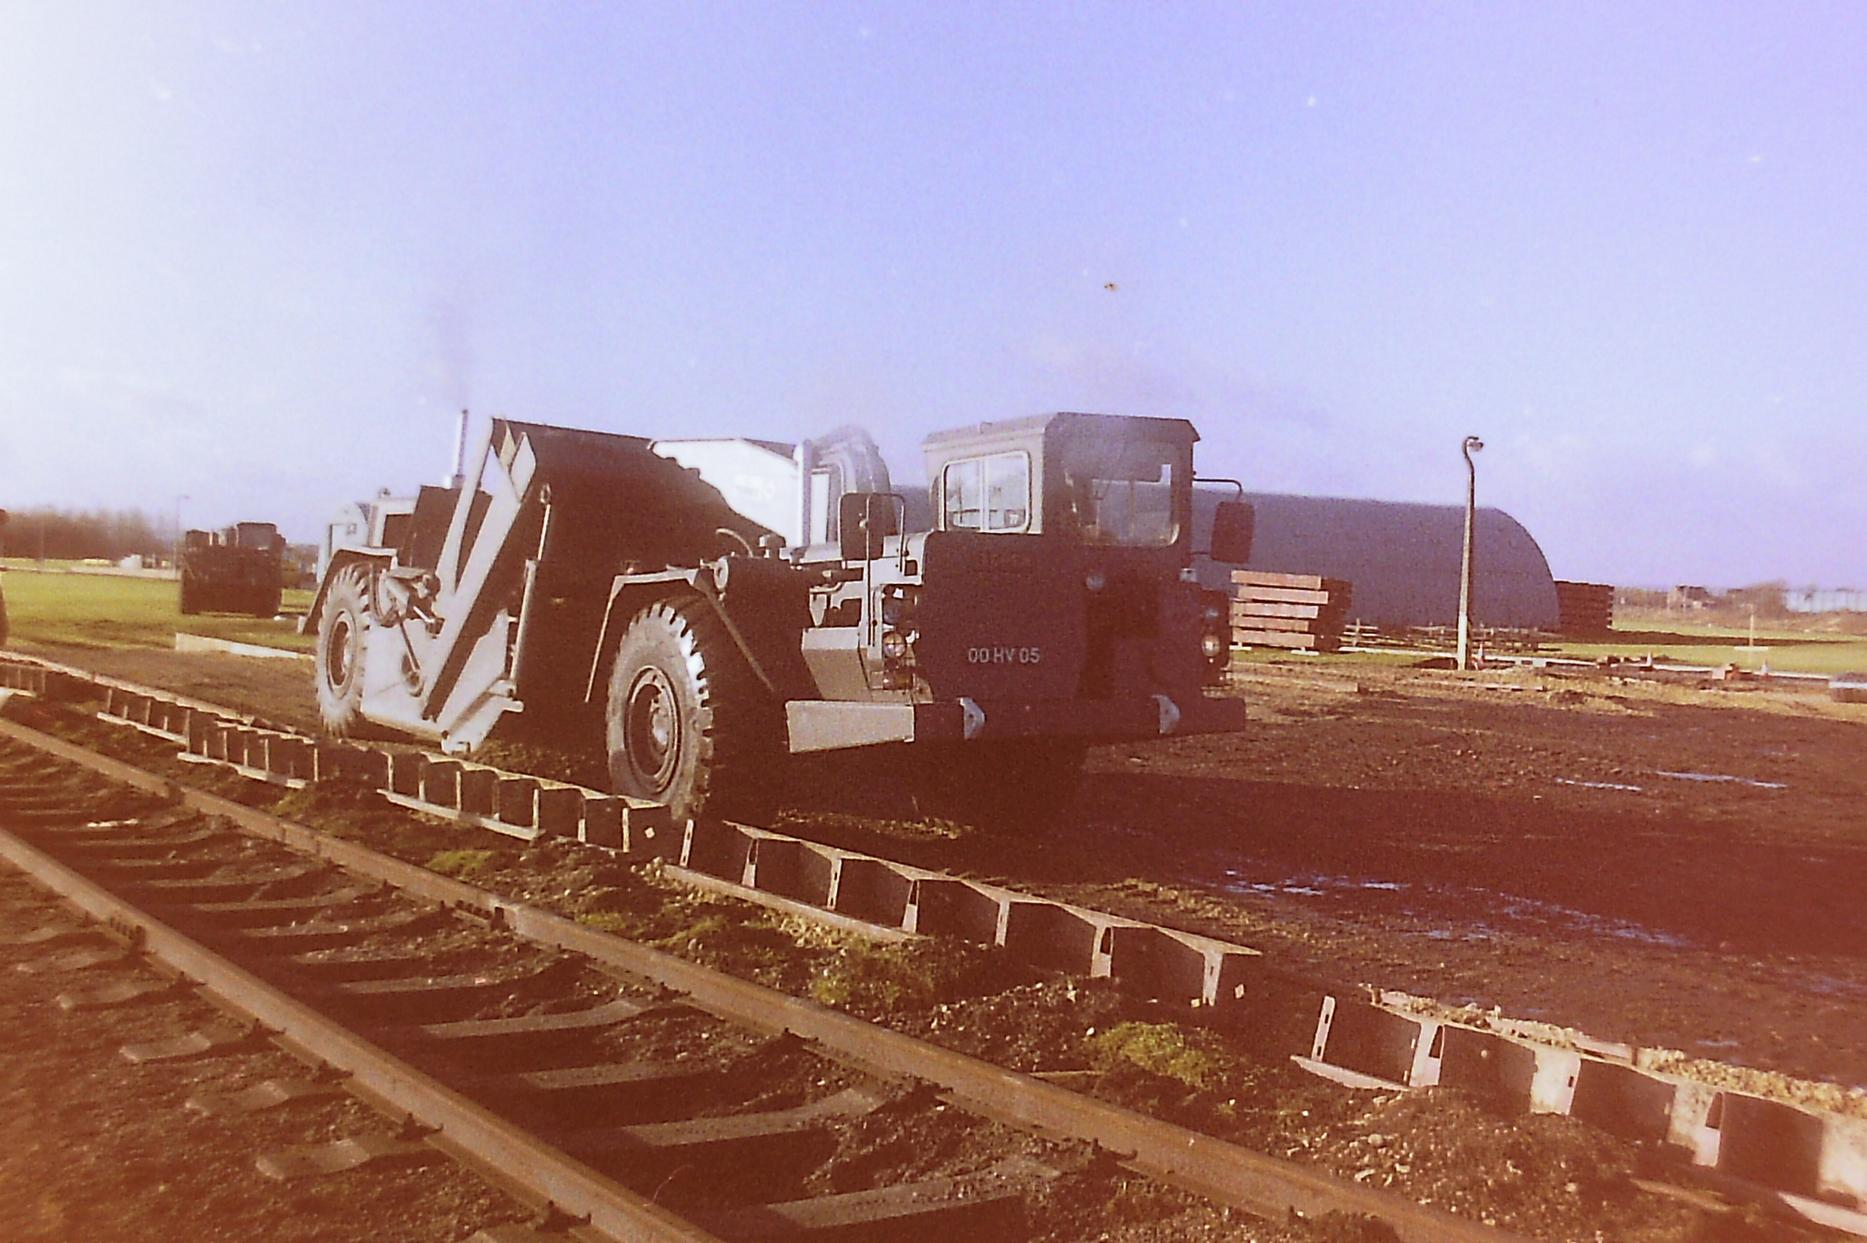 R E  plant Photos - Trailers, plant and equipment - HMVF - Historic